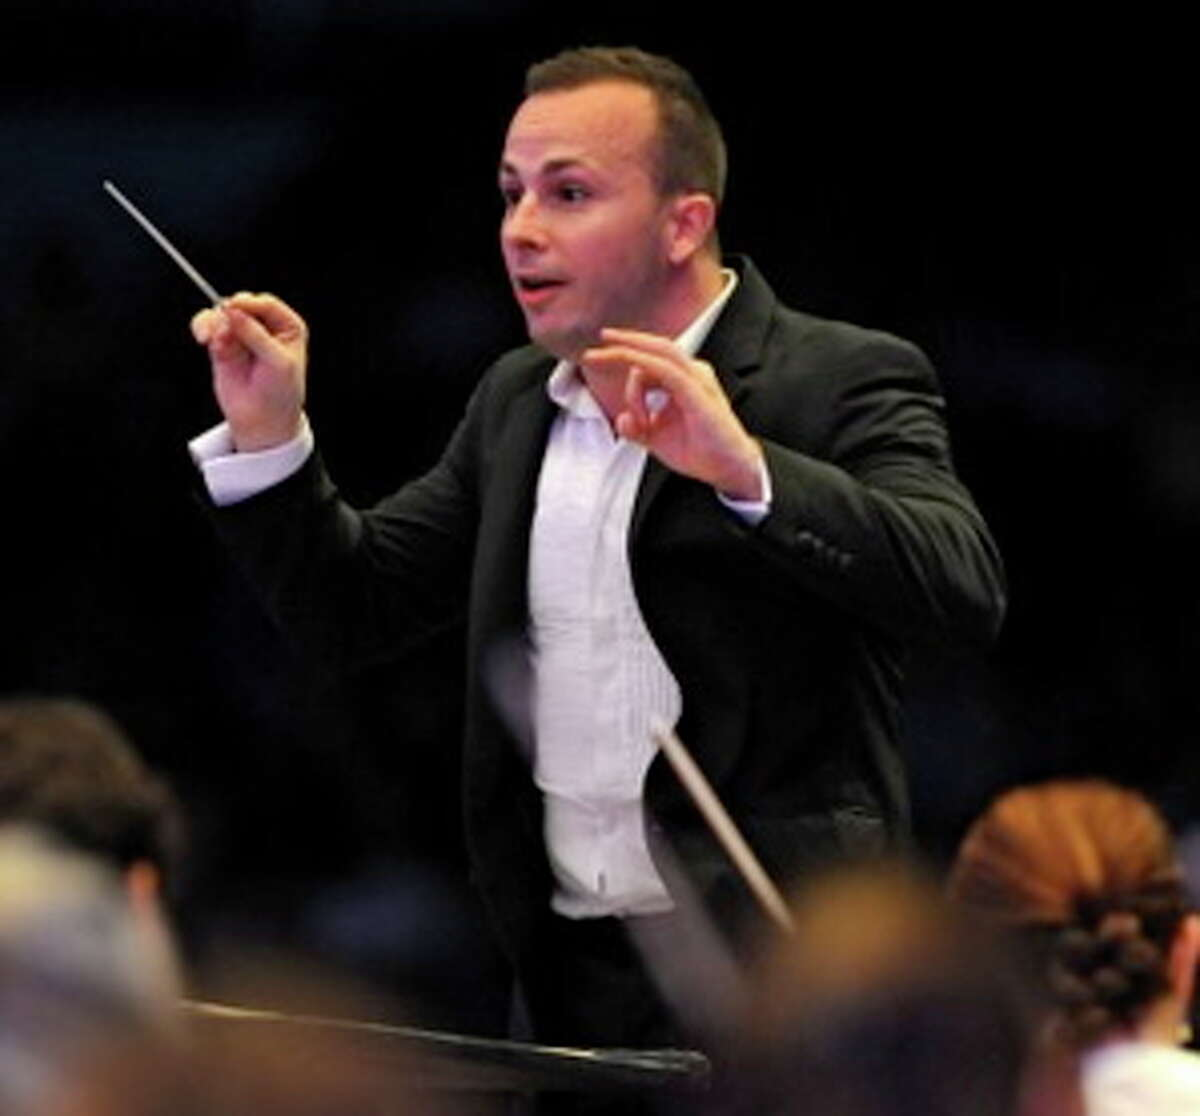 Philadelphia Orchestra Music Director Yannick Nezet-Seguin will conduct all four programs during this summer's shortened residency, running Aug. 11 to 14 at the Saratoga Performing Arts Center. He will also perform as soloist on Mozart's Piano Concerto No. 122 on opening night. (Provided photo.)